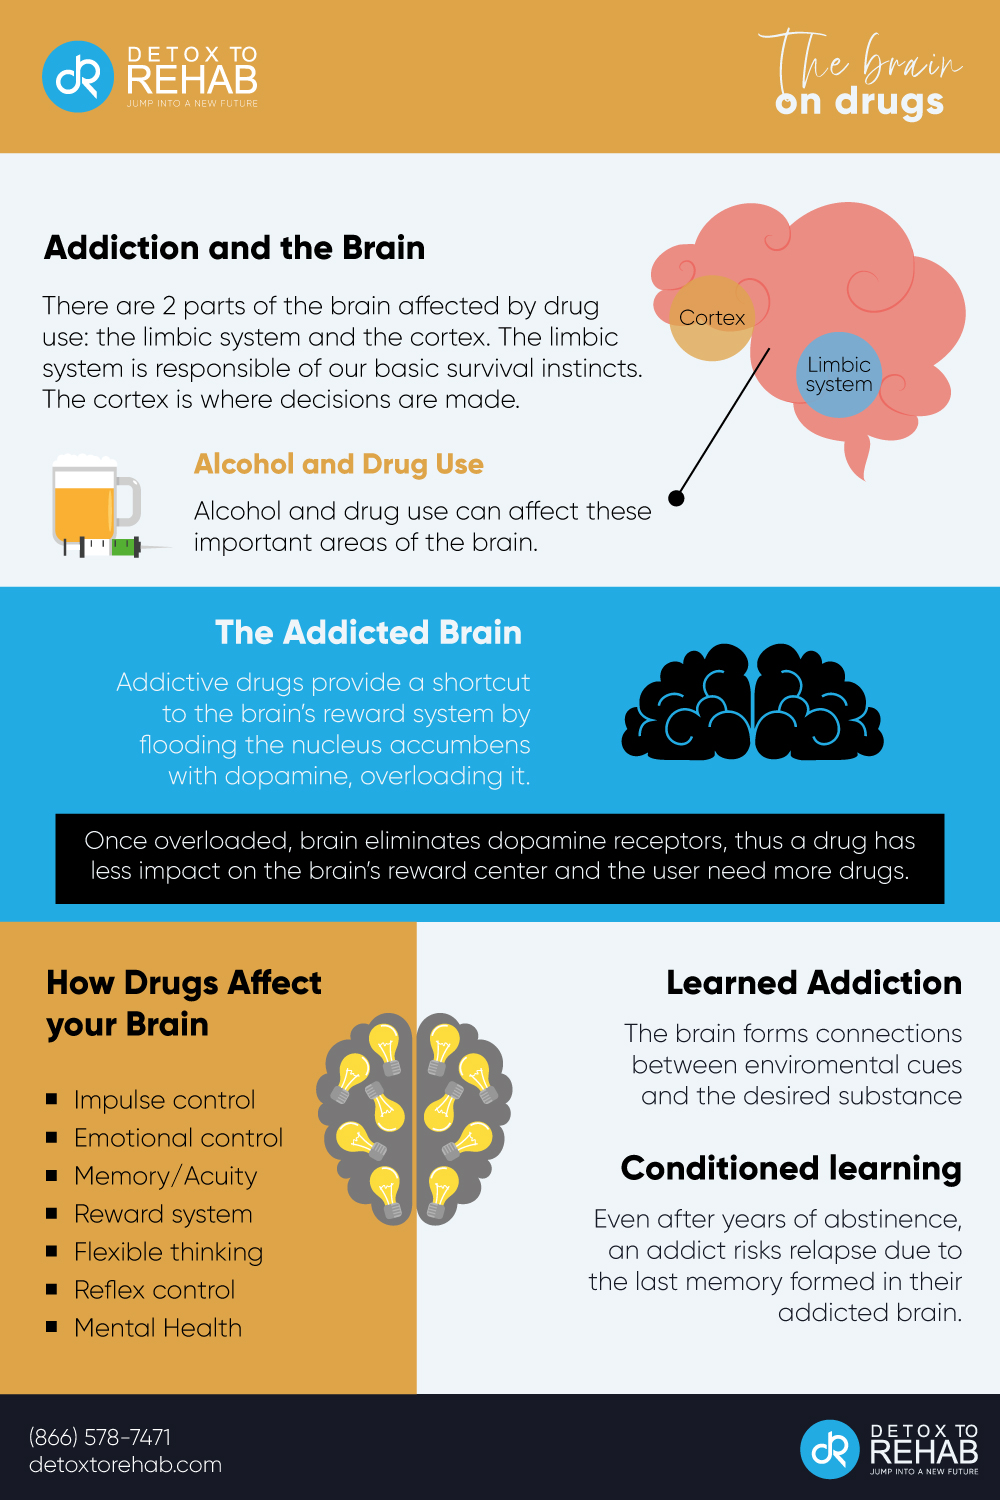 The Addicted Brain infographic